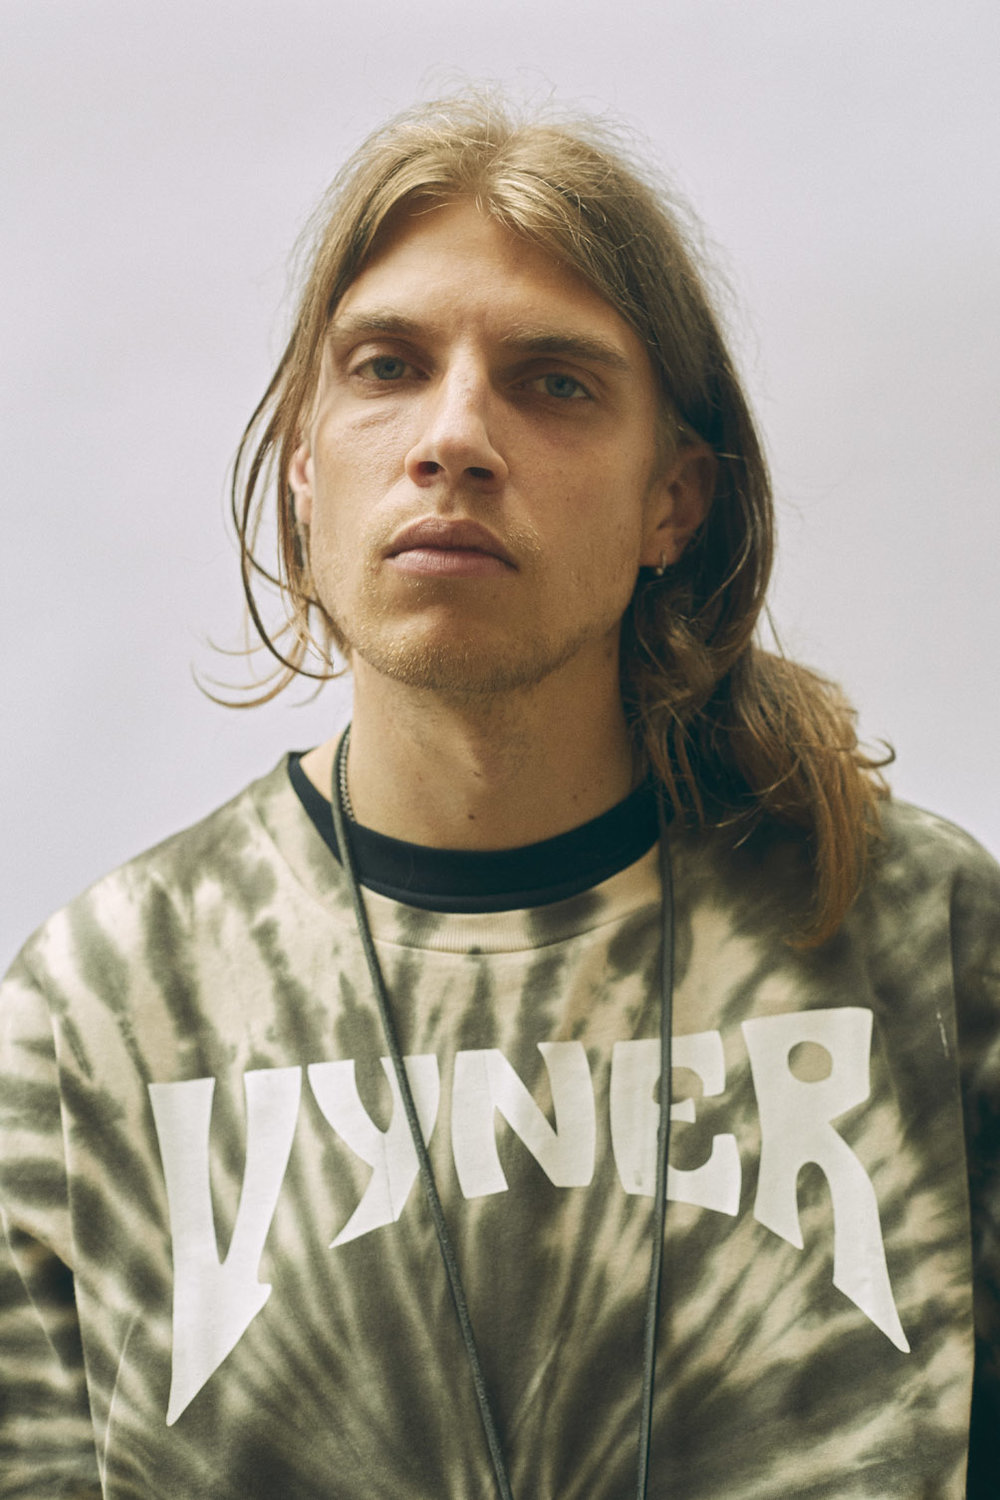 More Images & Info about VYNER ARTICLES SS19